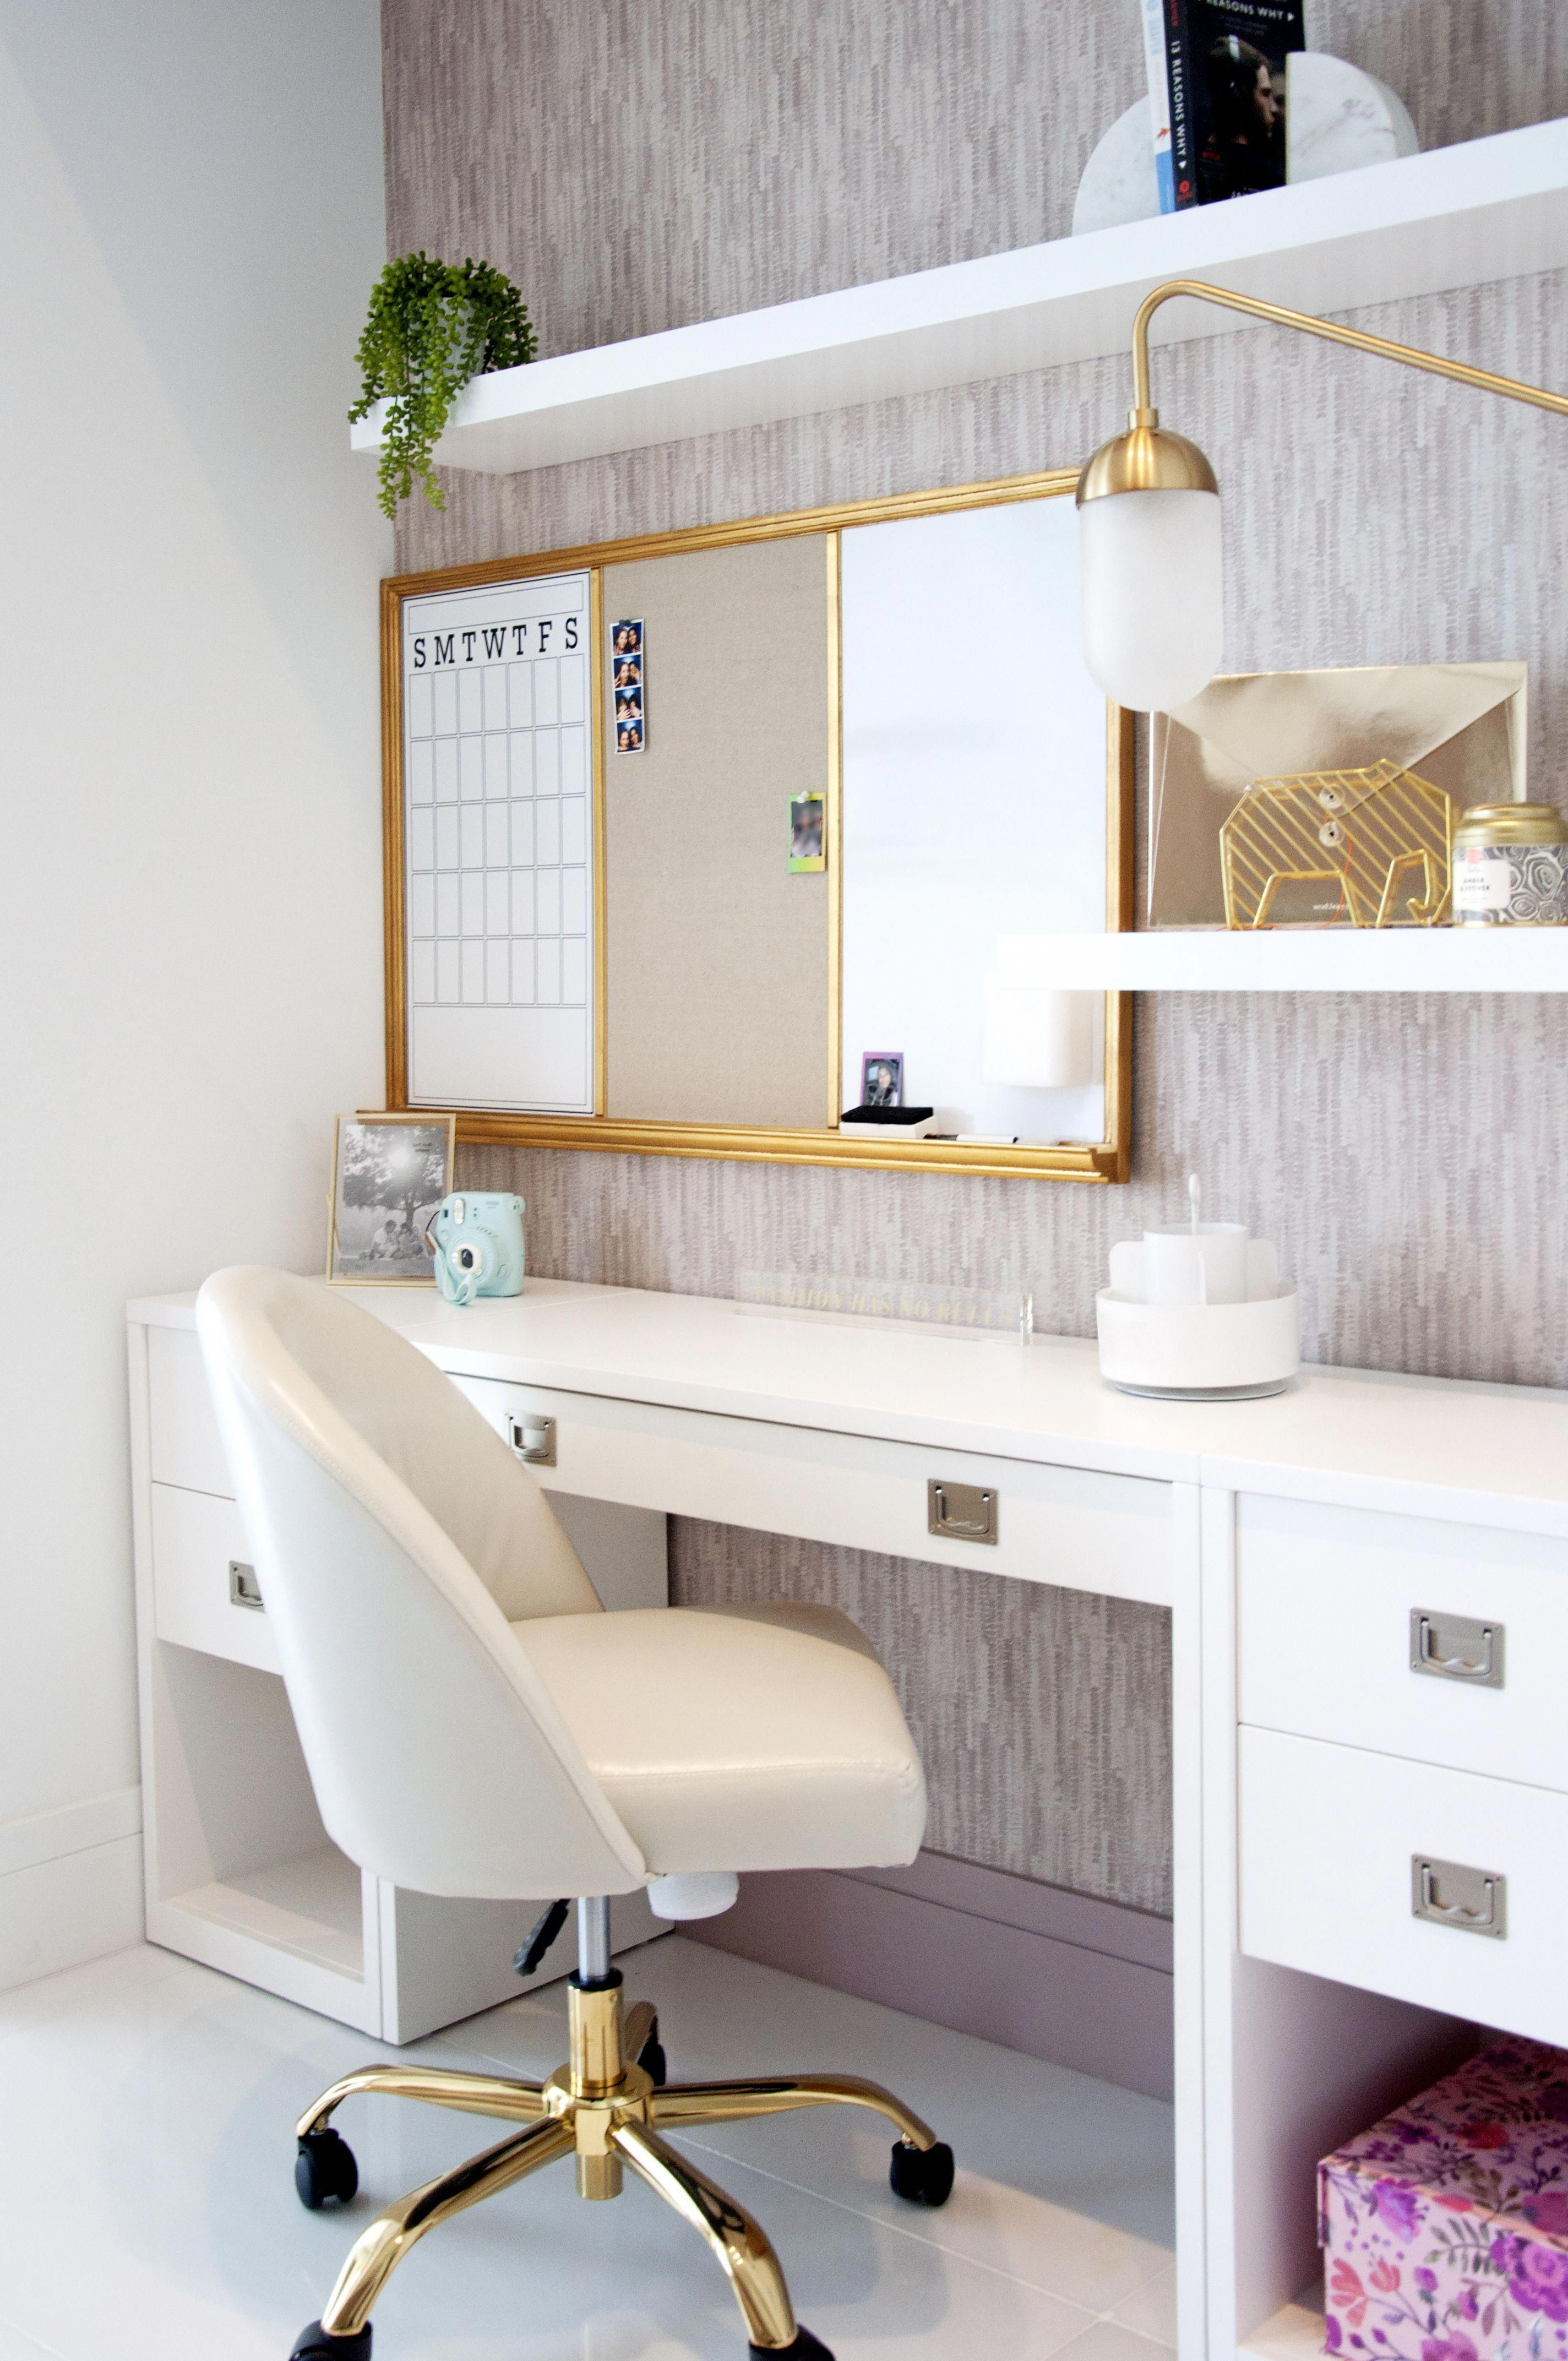 Study Table Designs For Small Rooms: Get More Ideas On Remodel Bathroom #remodelinghouseideas